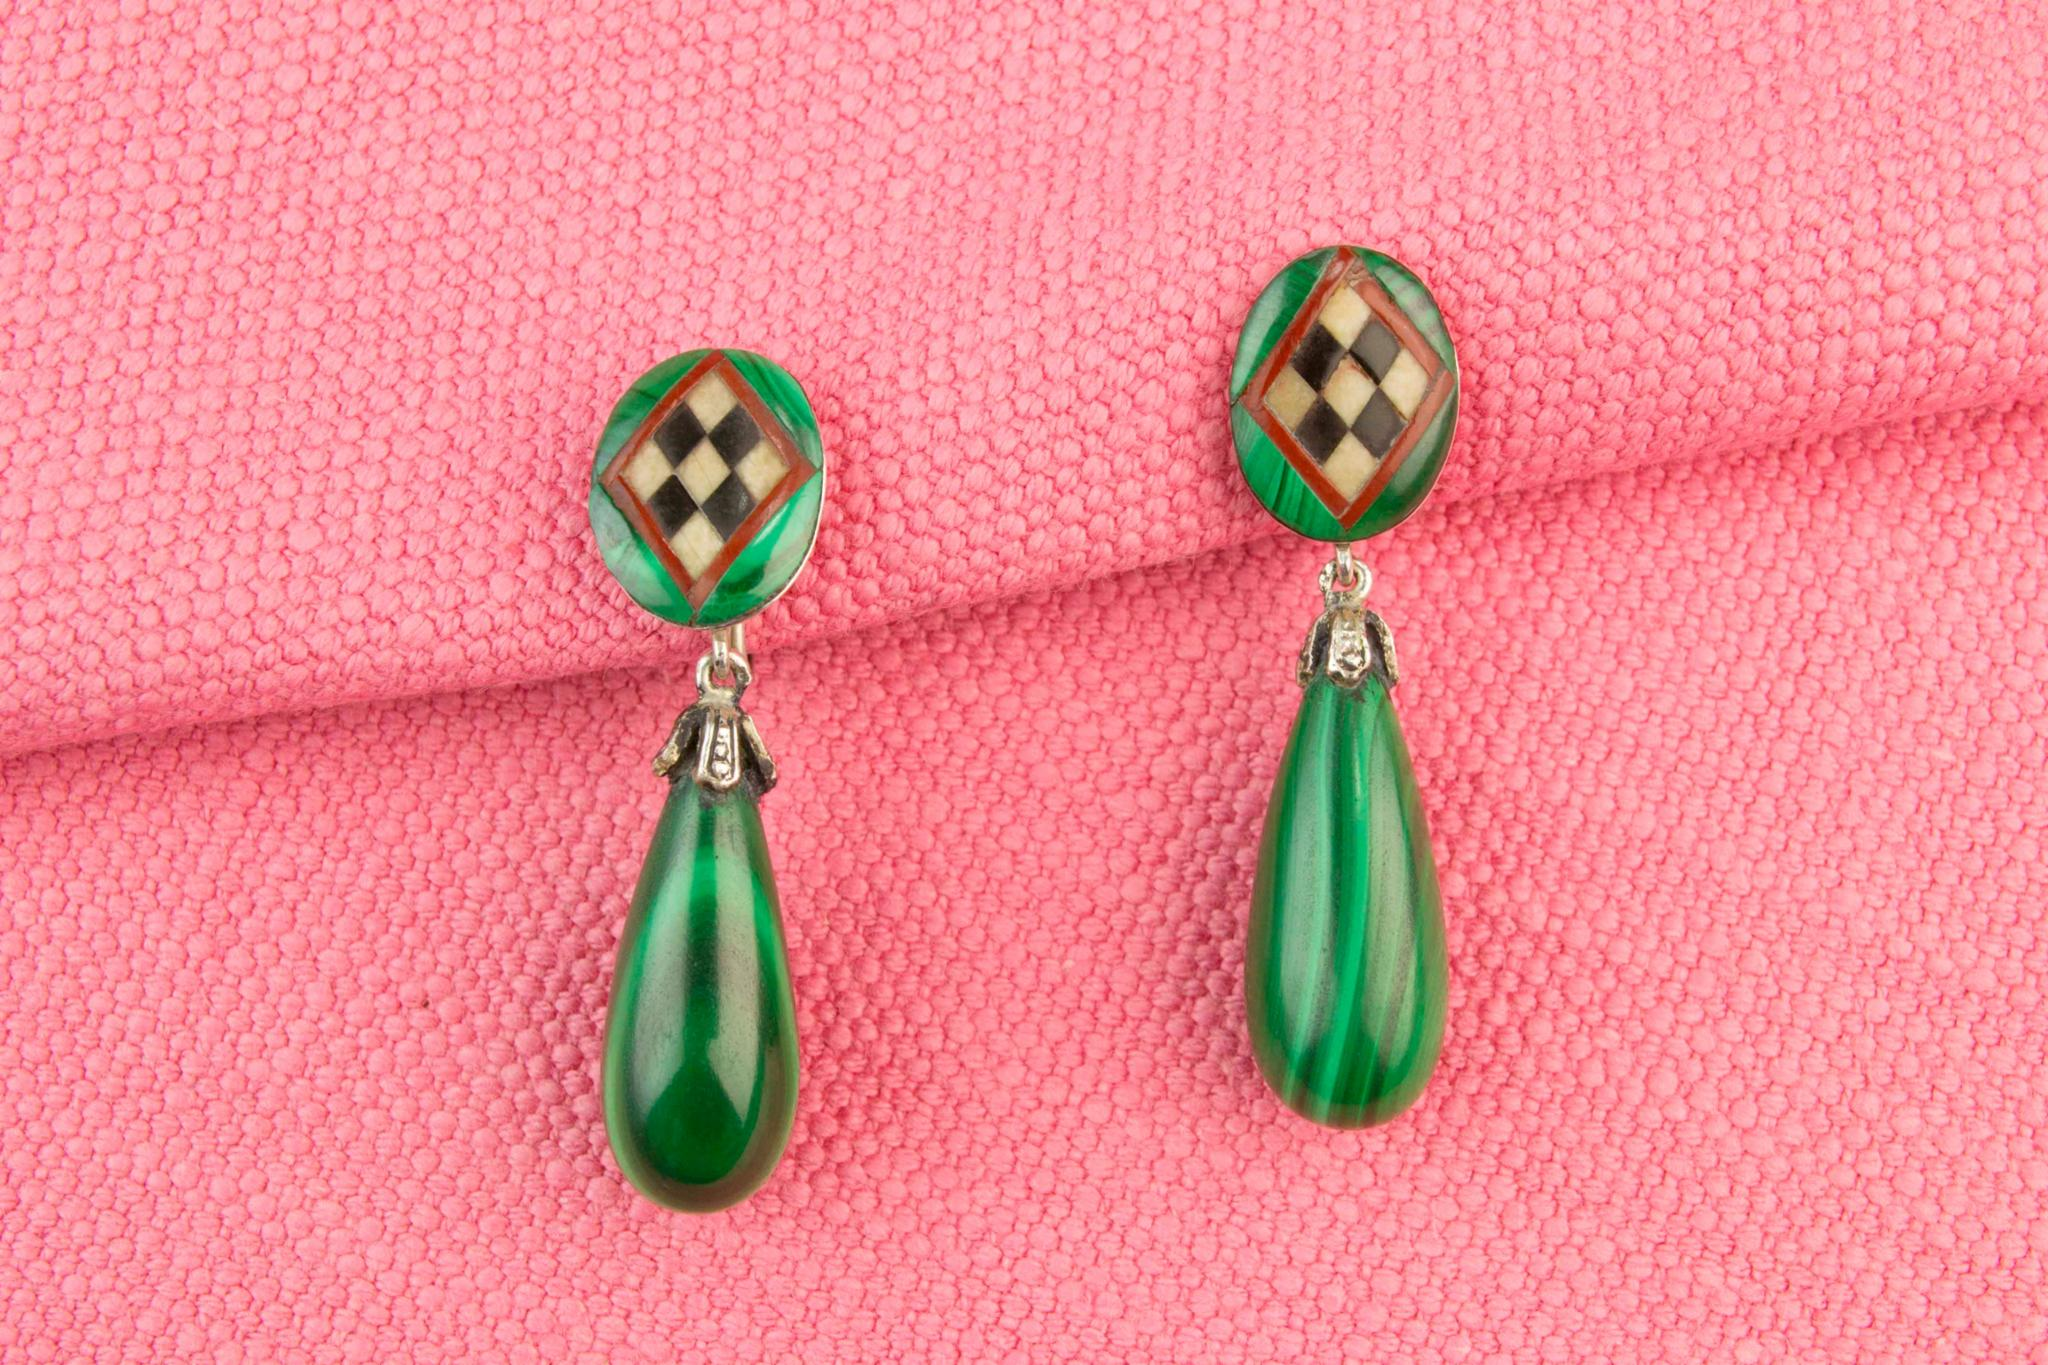 Malachite Agate and Silver Earrings, Scottish circa 1910